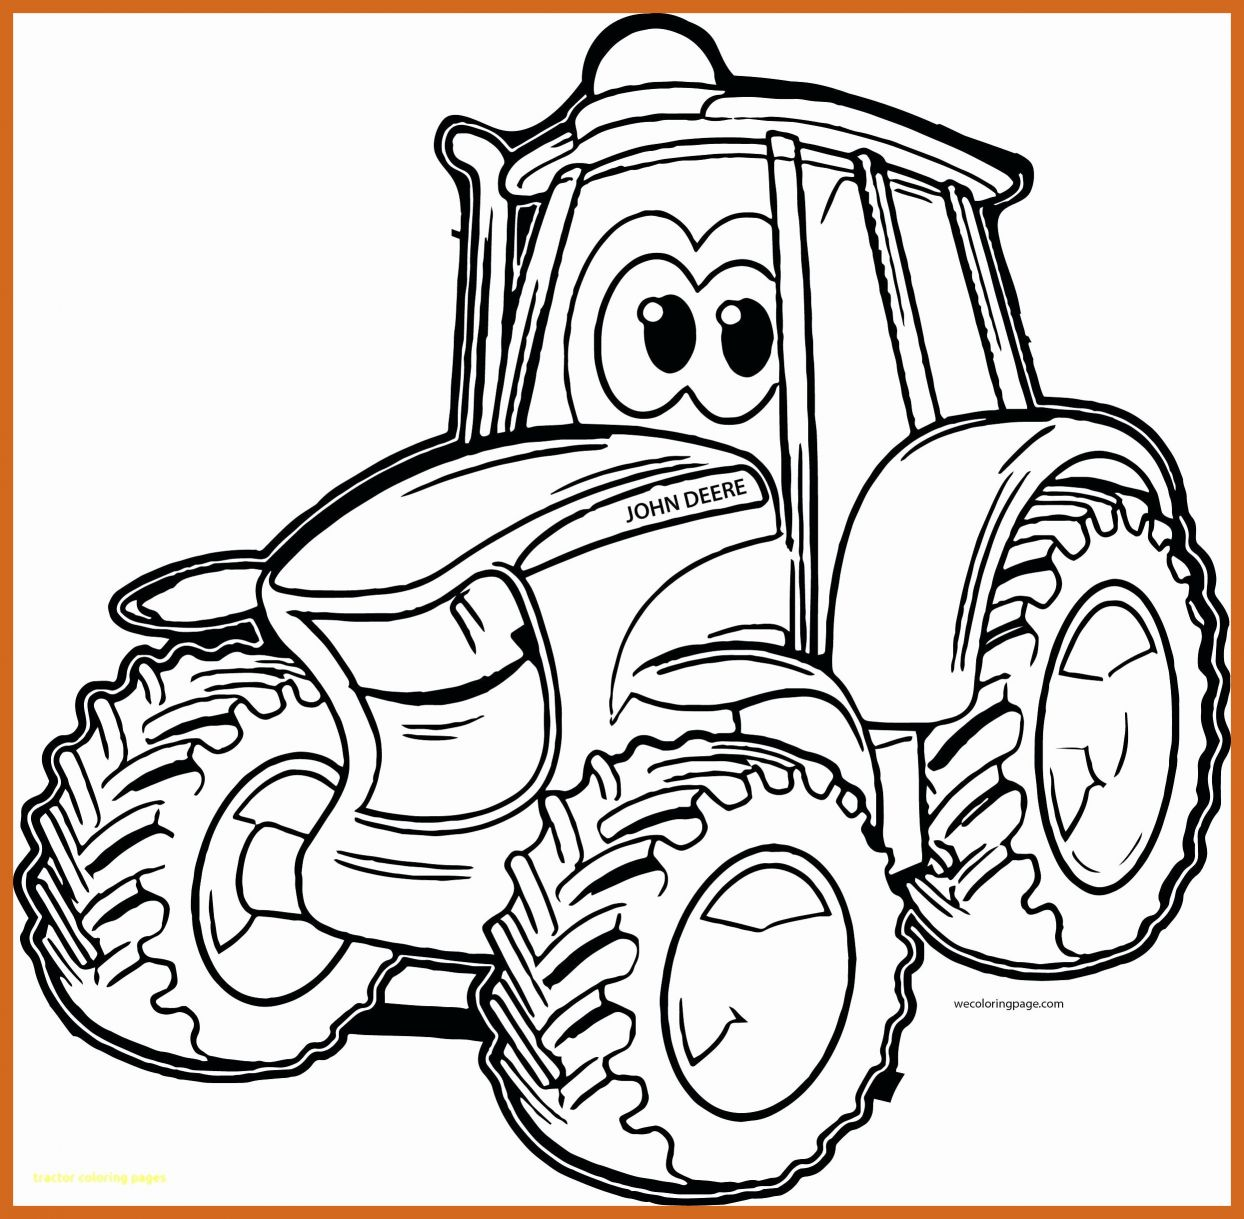 john deere coloring pages at getdrawings  free for